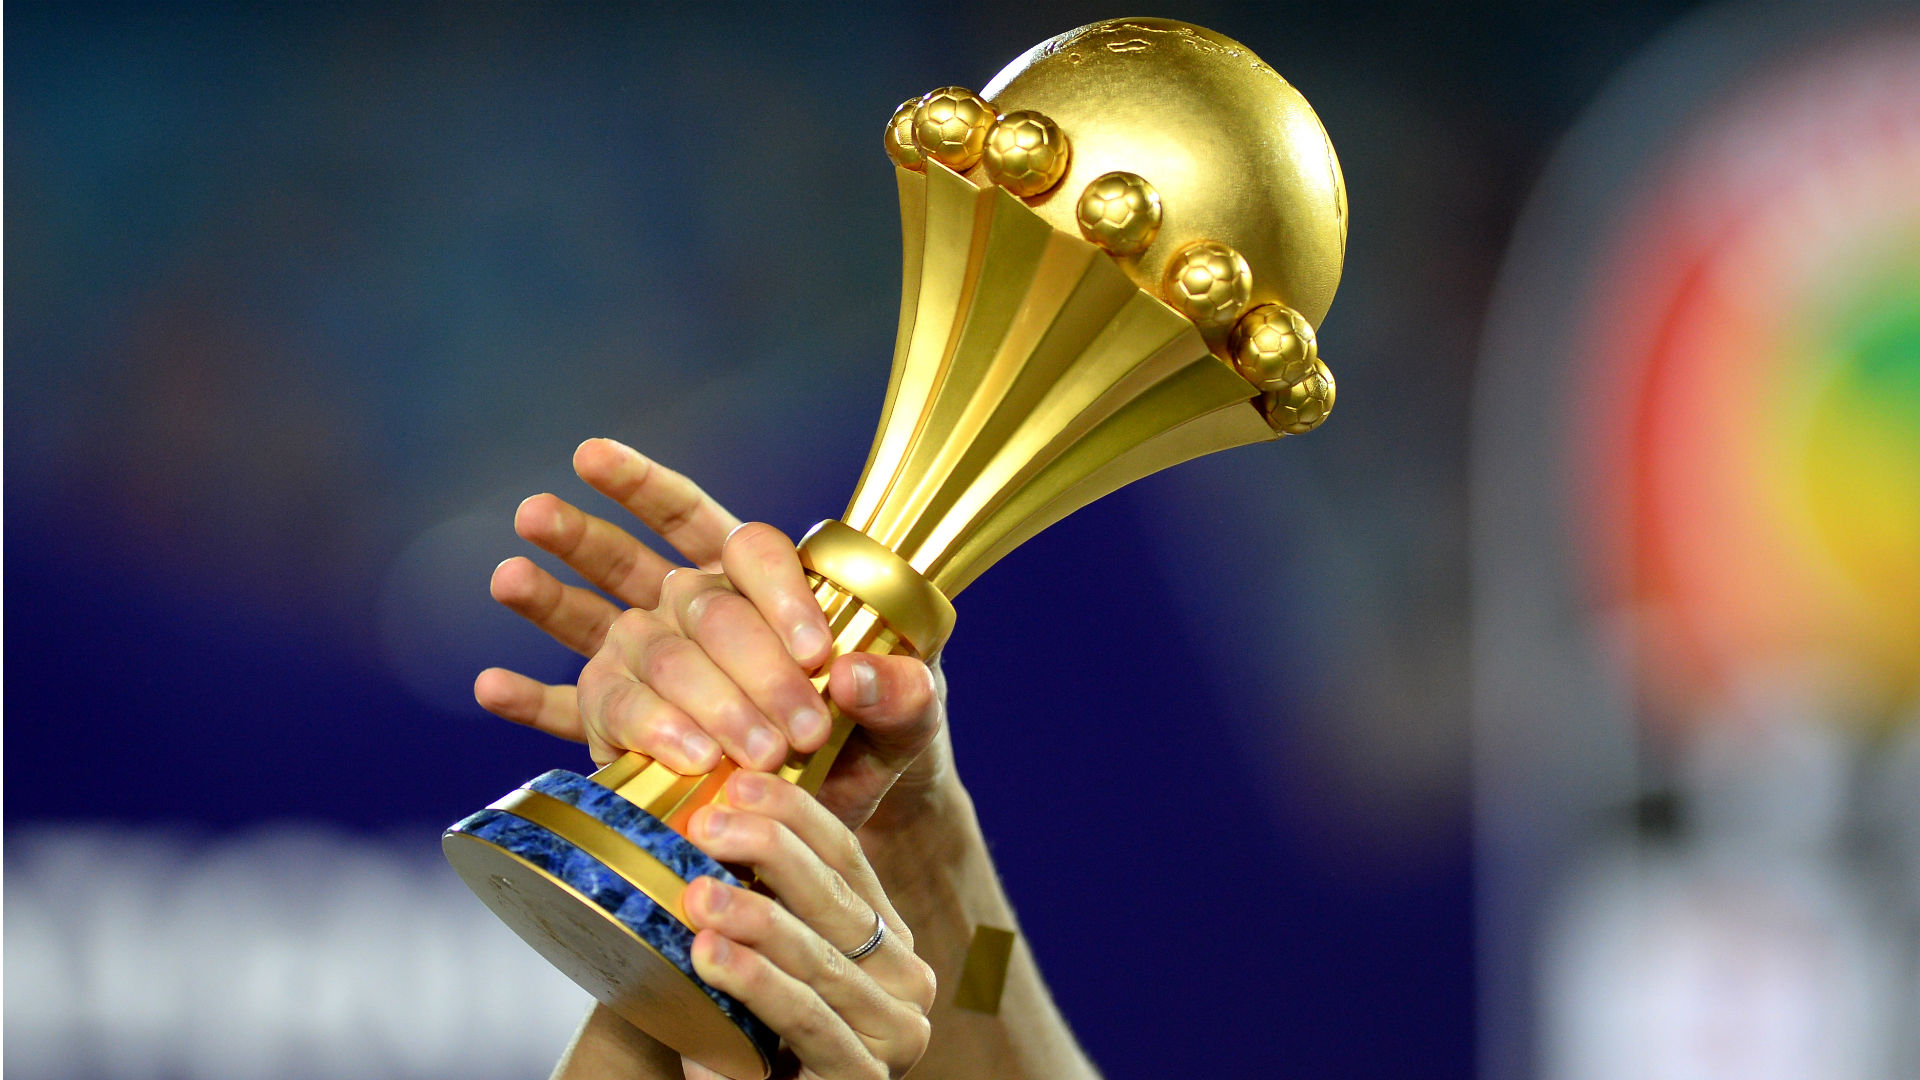 AFCON Trophy Reportedly Stolen From CAF Office